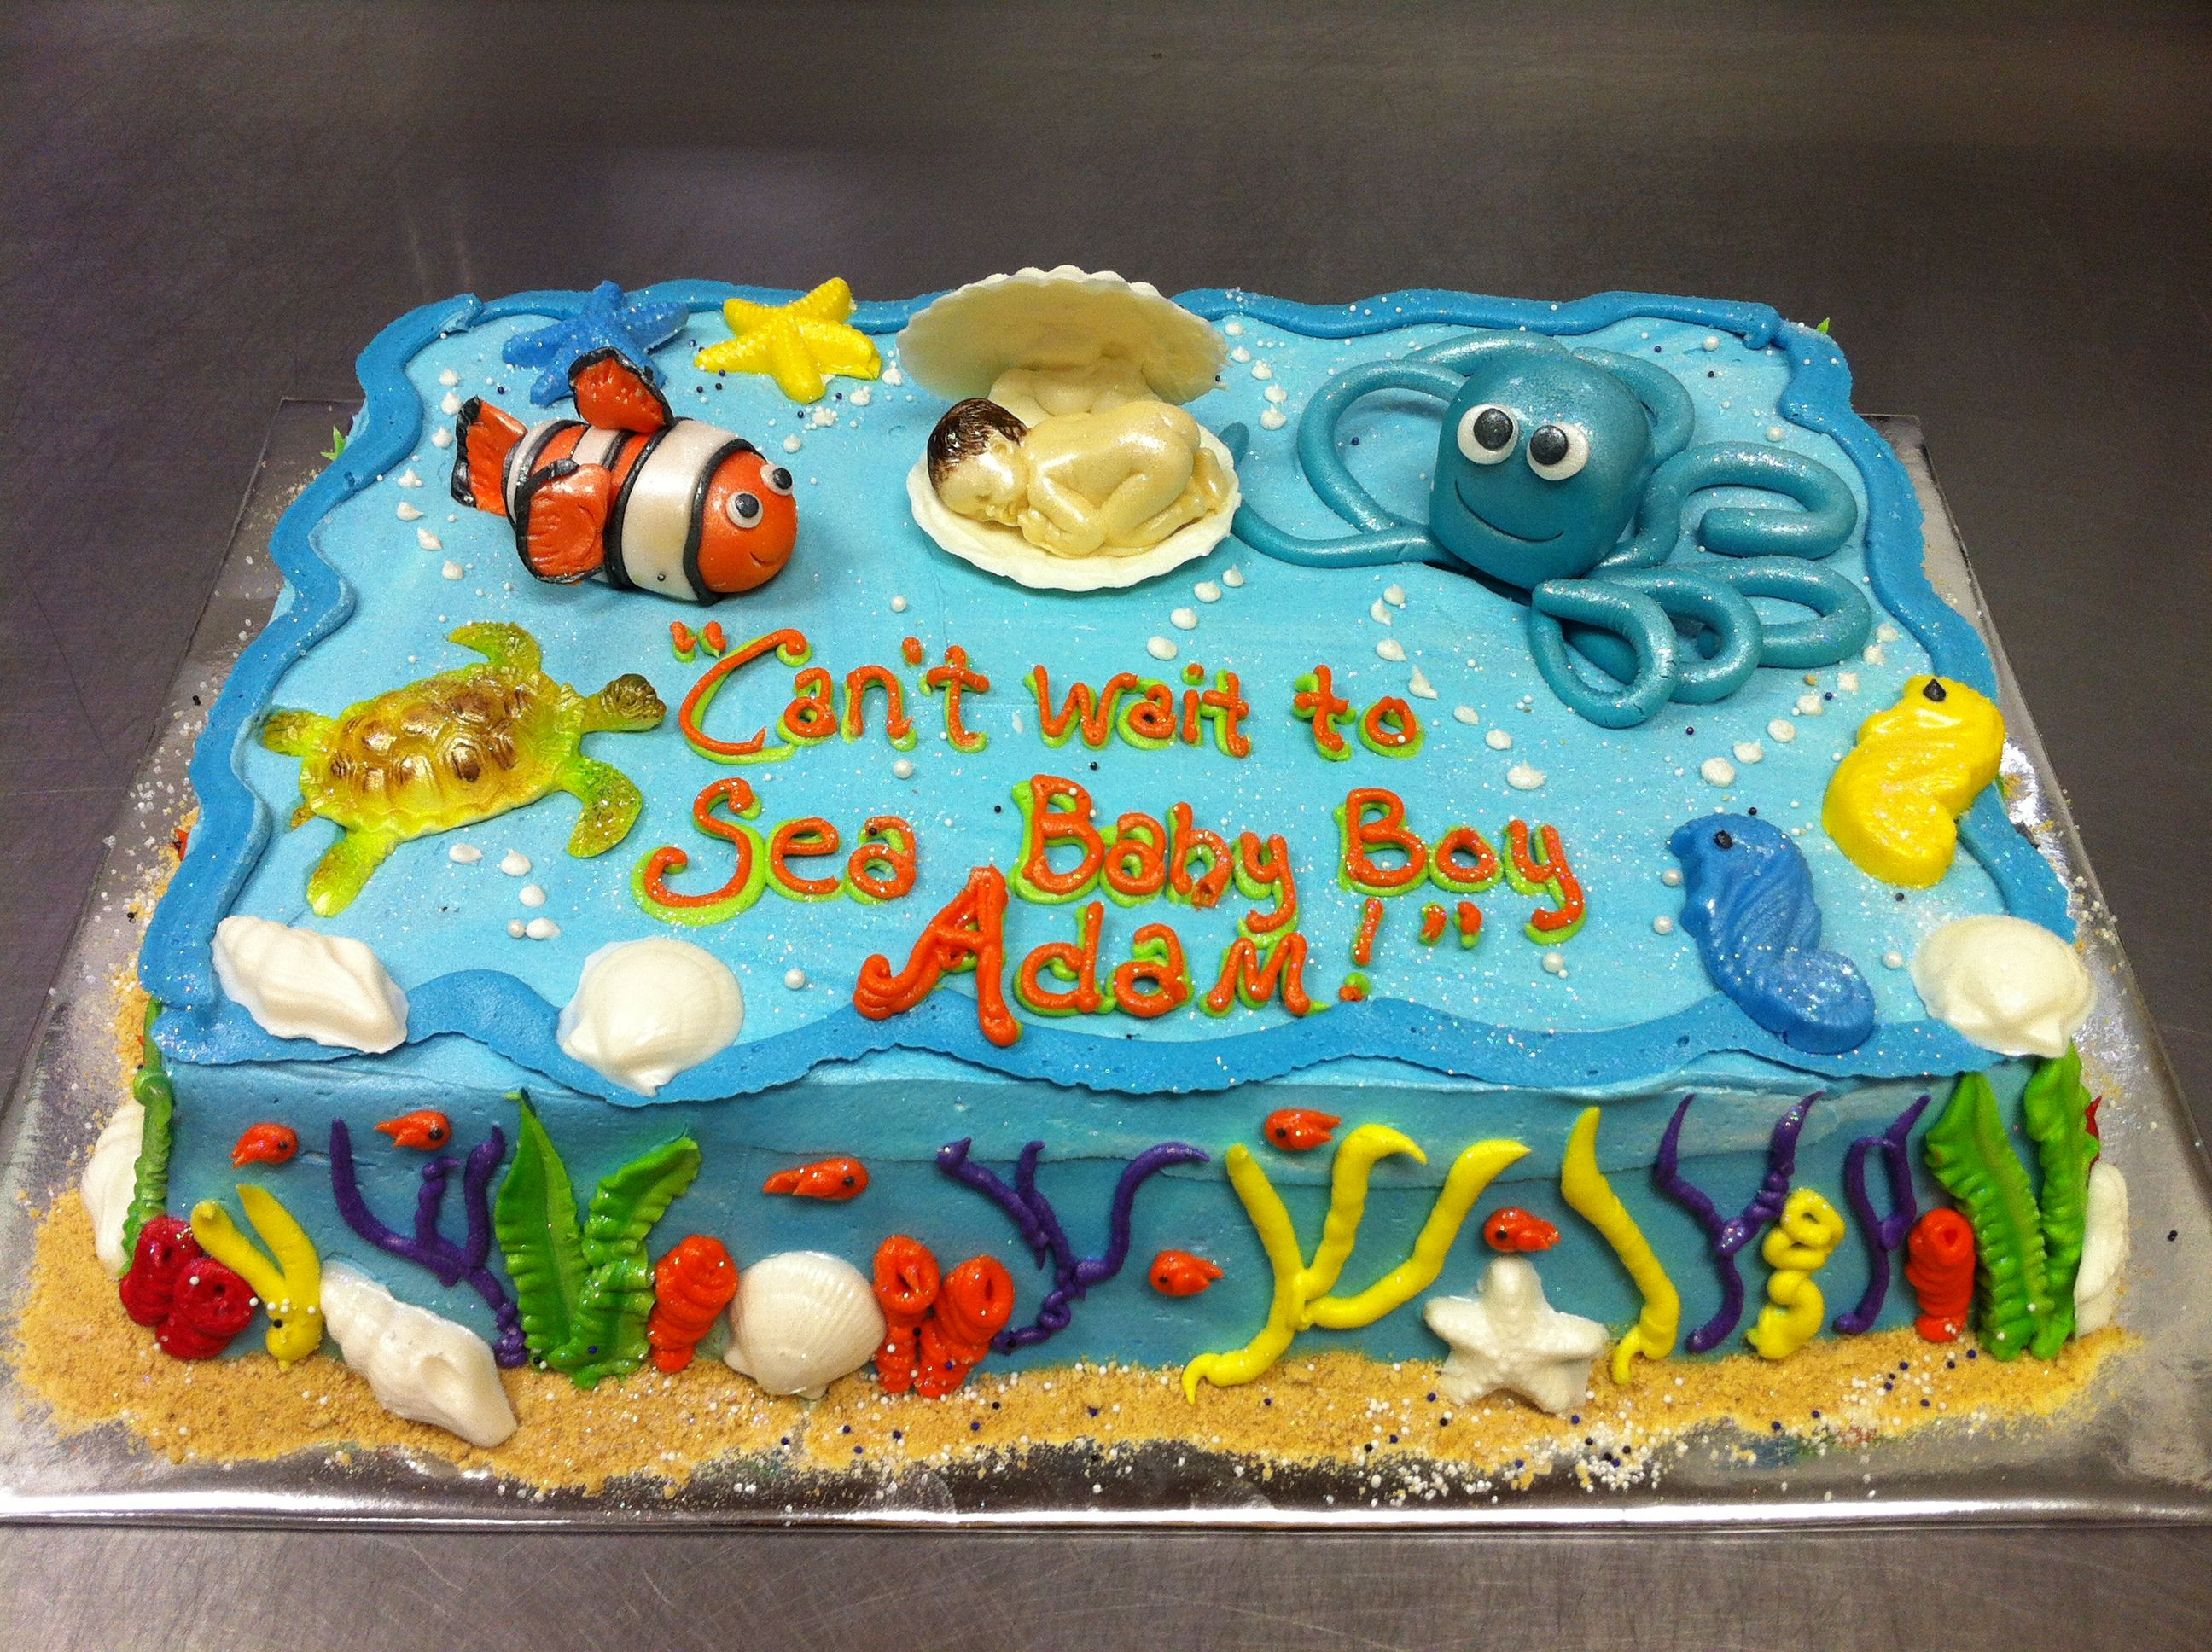 Under The Sea Themed Baby Shower Cake.